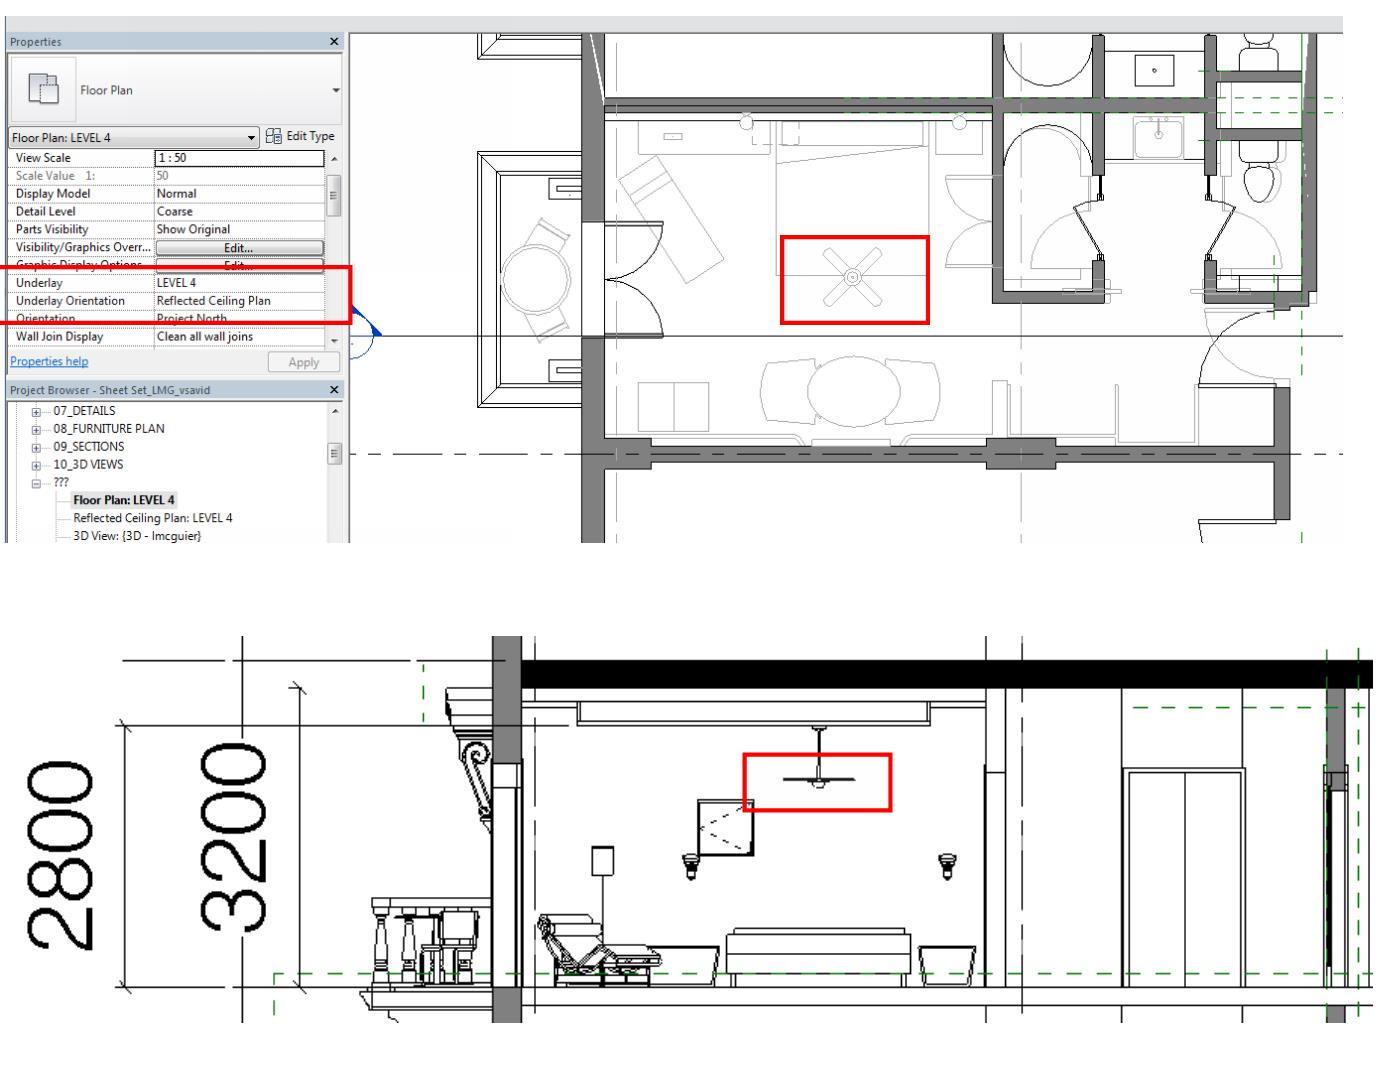 Can´t show a ceiling in a FLOOR PLAN - Autodesk Community- Revit ...